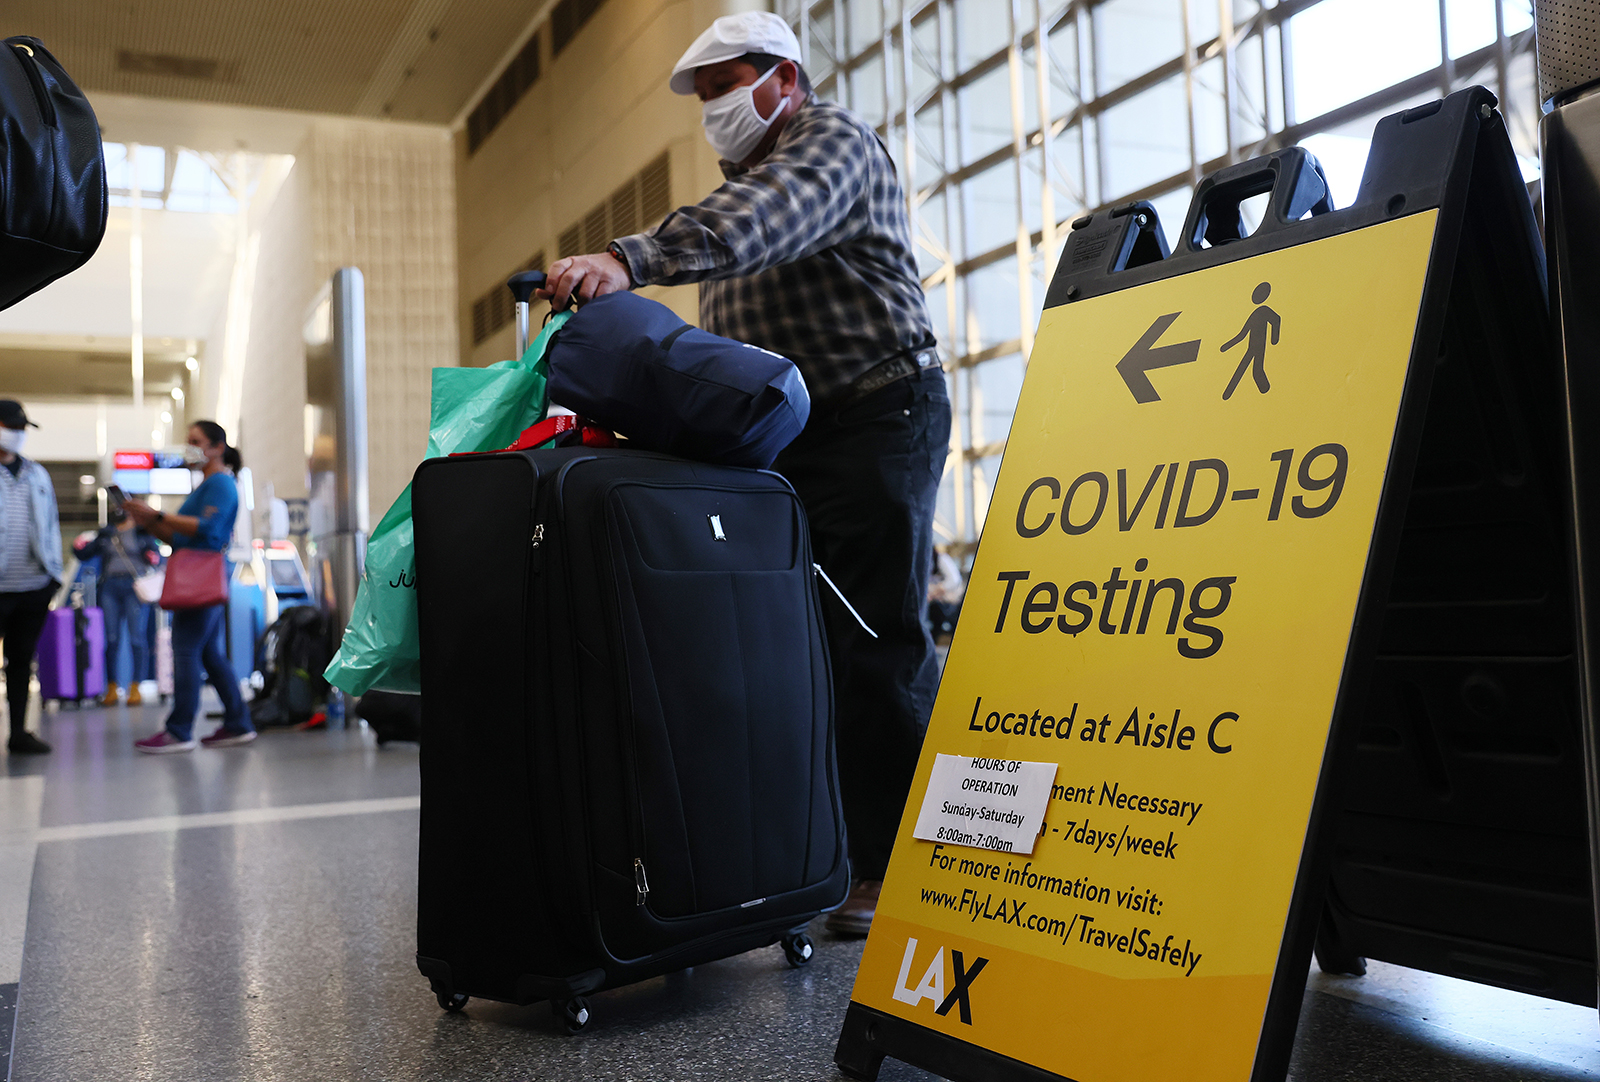 People wait in line to check in near a sign pointing to a Covid-19 testing area in the Tom Bradley International Terminal at Los Angeles International Airport (LAX) in California, on December 22, 2020.